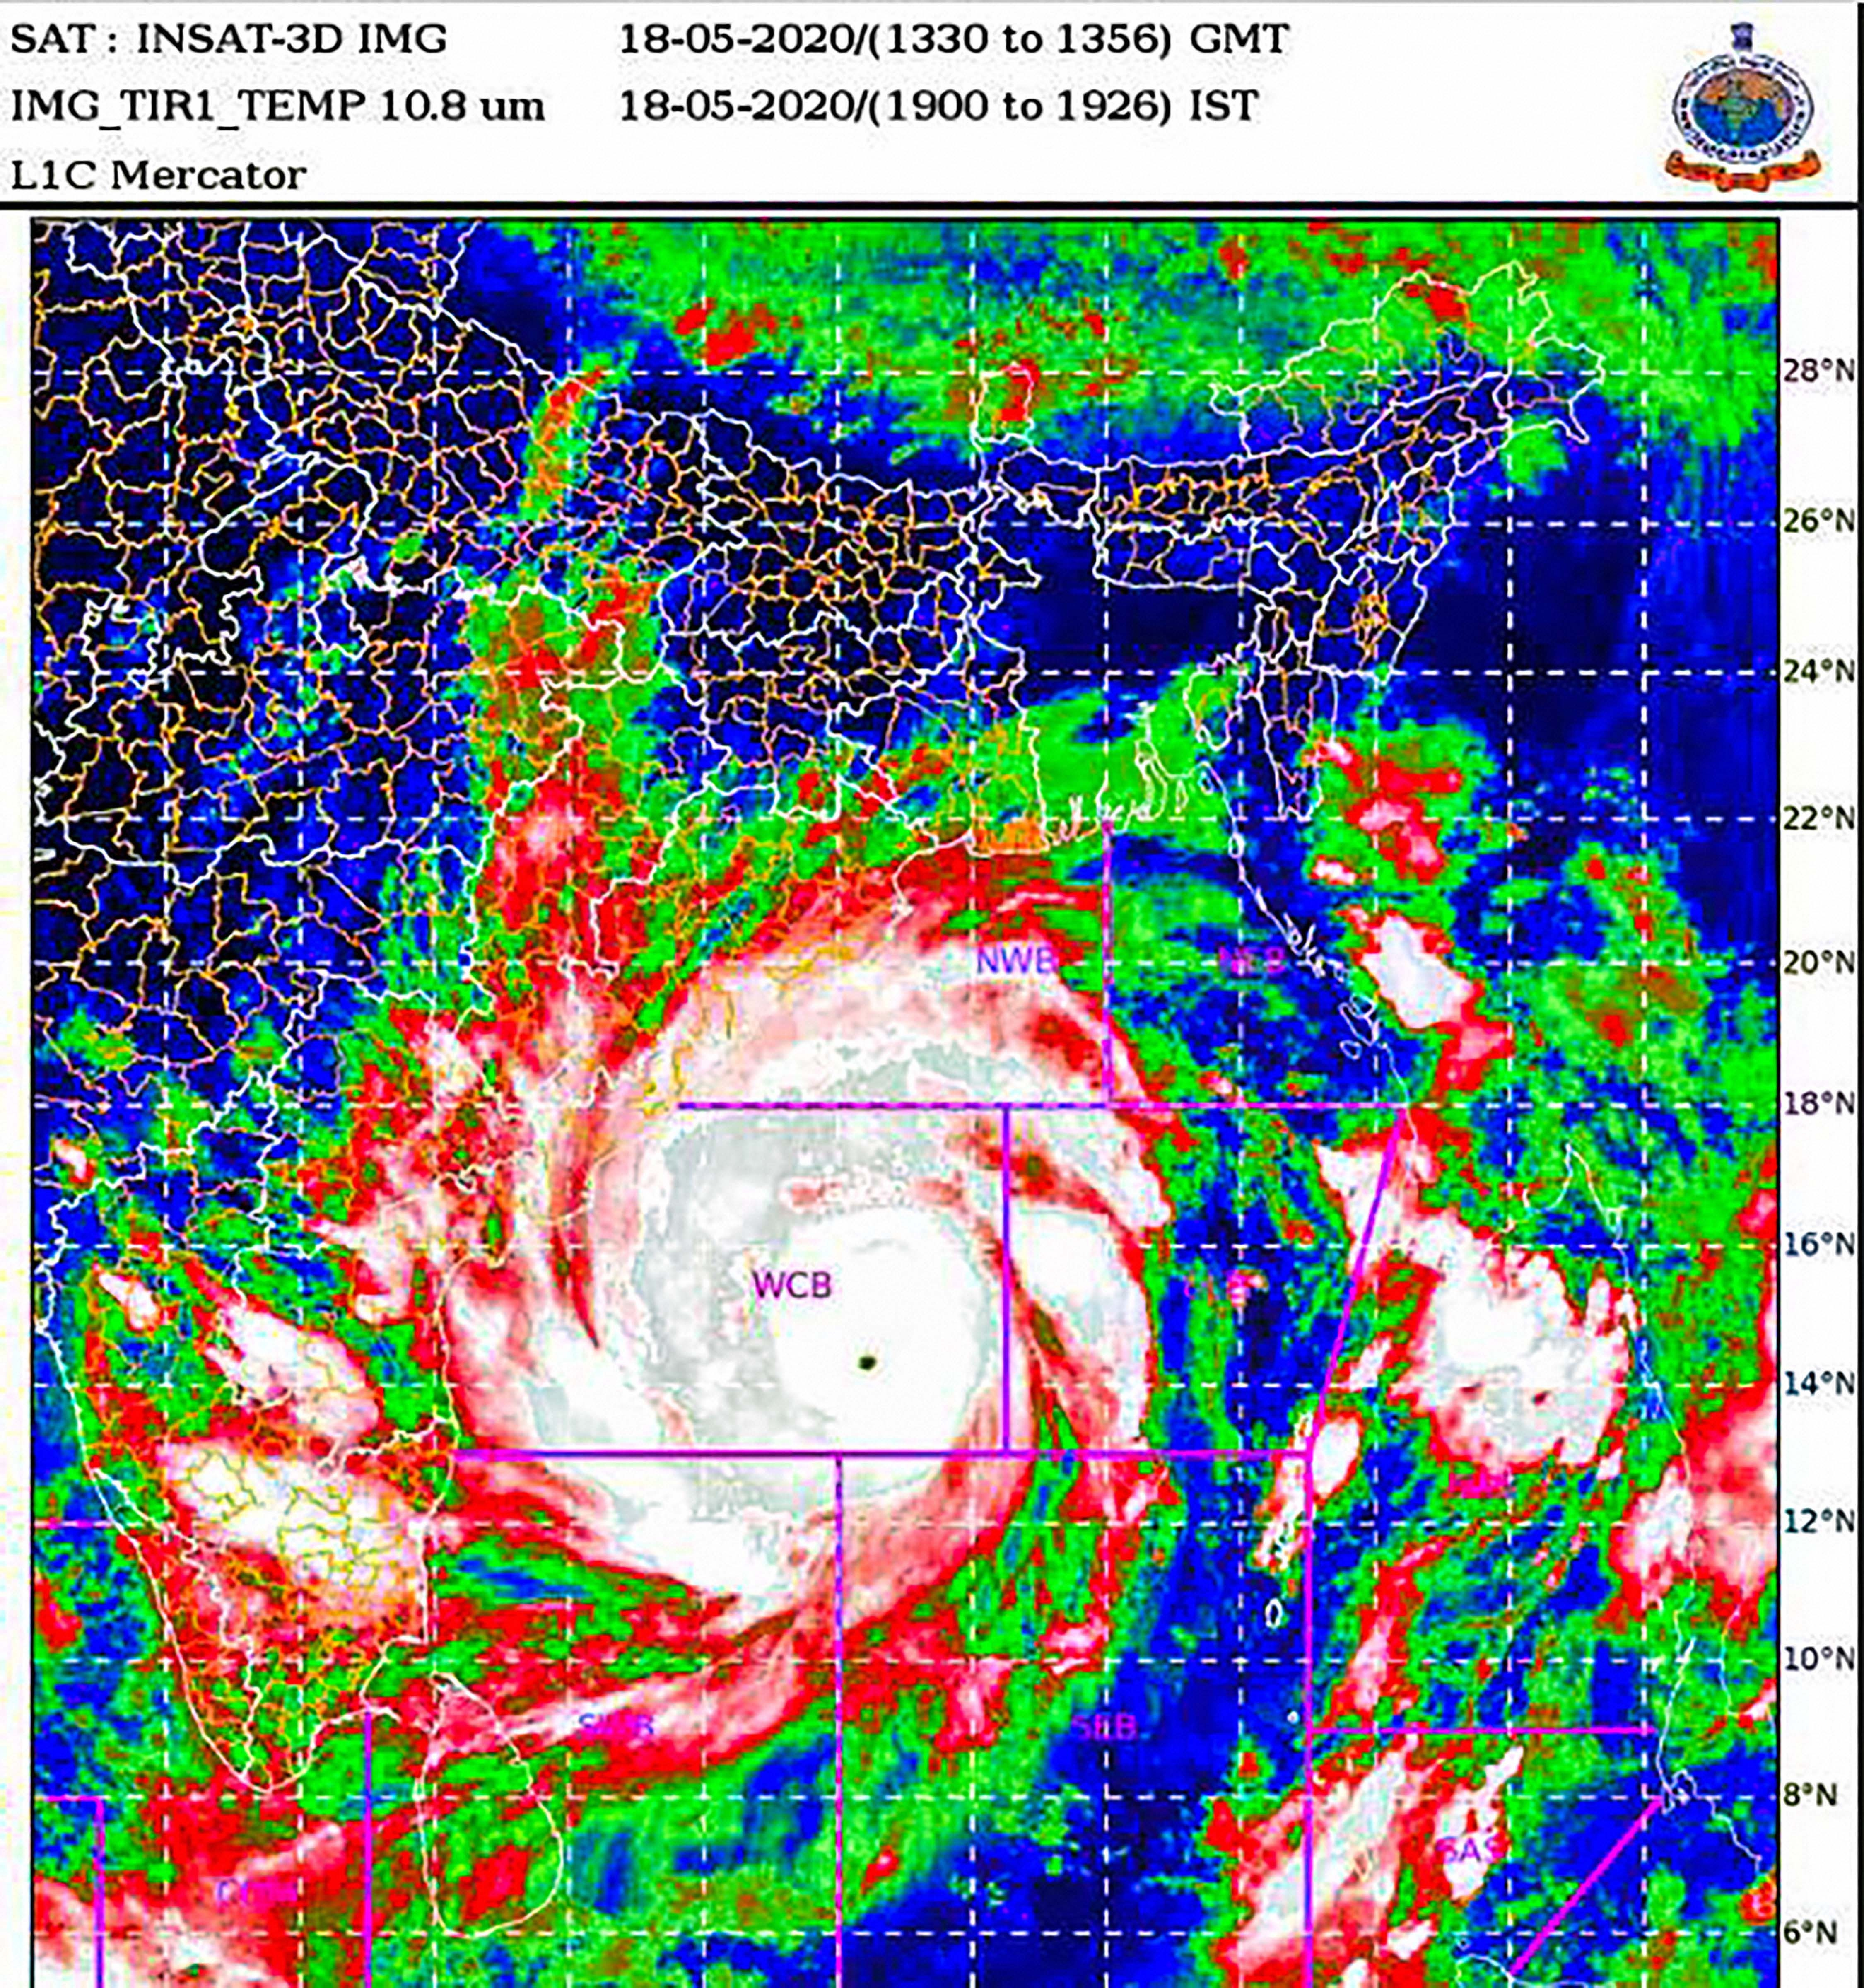 Super Cyclone Amphan over west-central Bay of Bengal, lay centered at 1730 hrs IST of today, over west-central Bay of Bengal near latitude 14.0°N and longitude 86.3 °E, about 700 km nearly south of Paradip (Odisha).